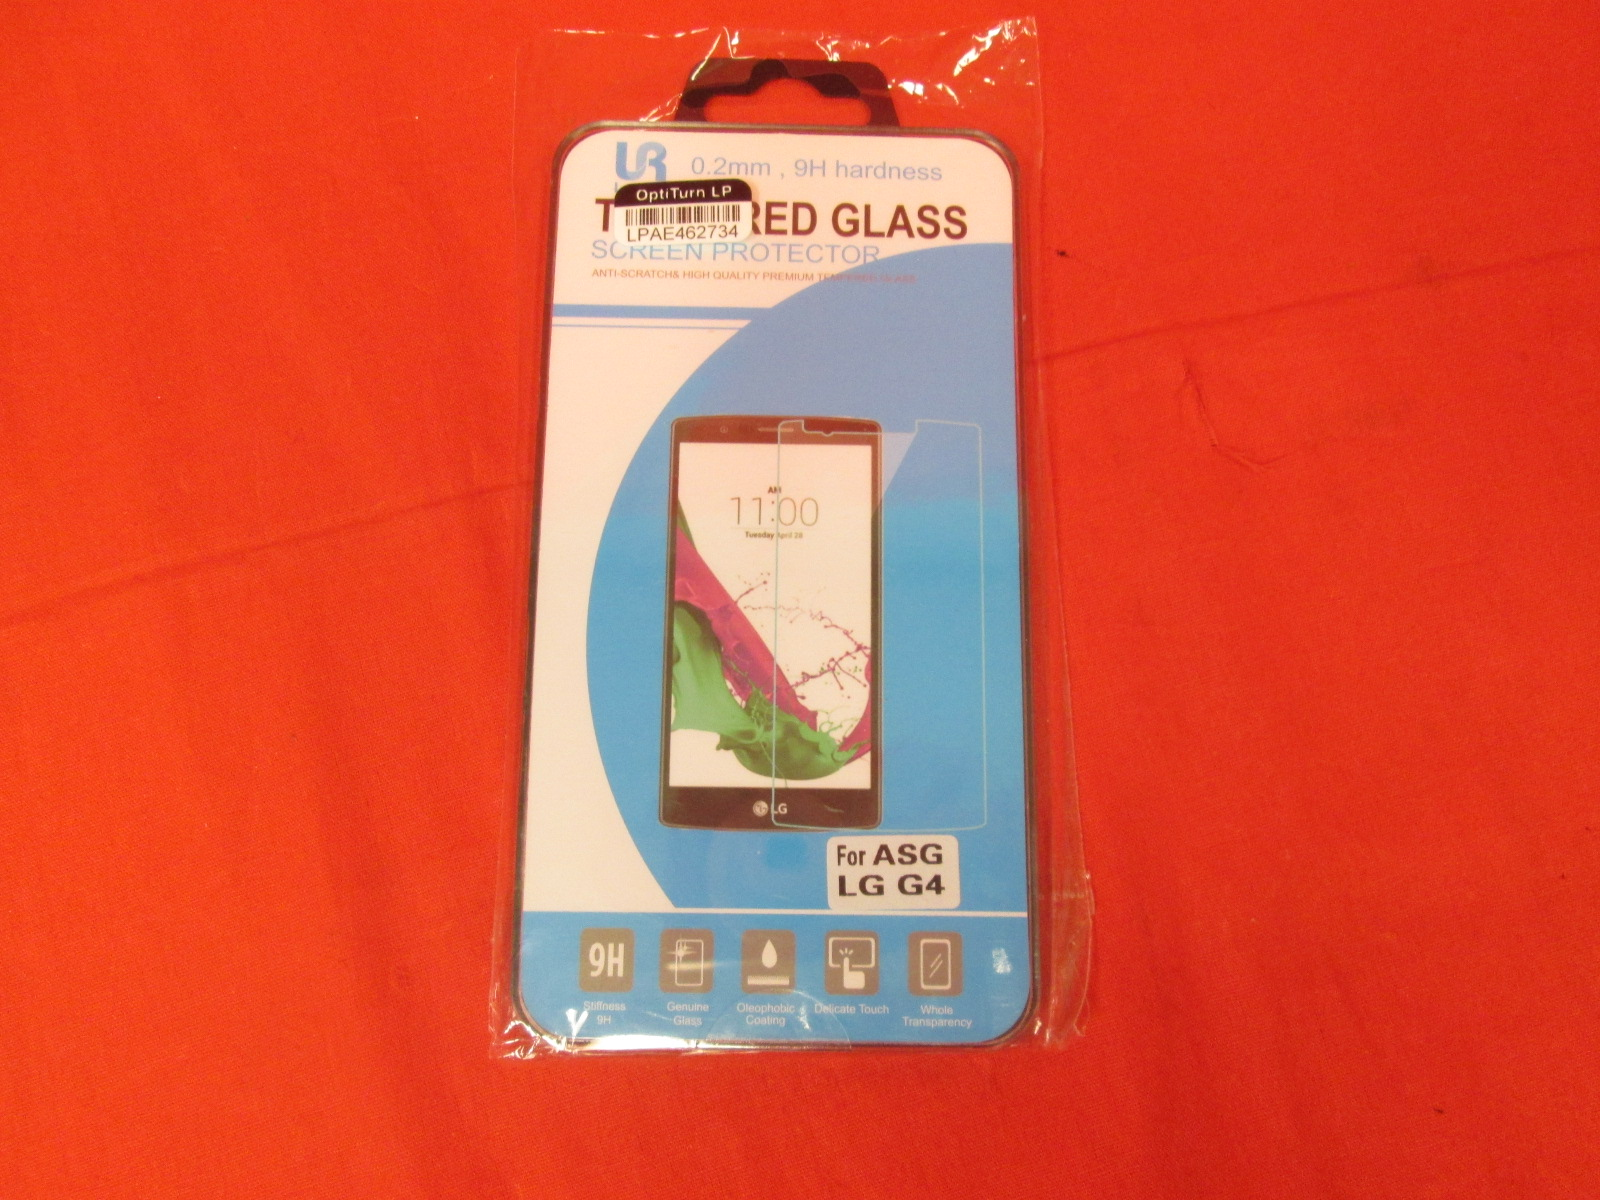 Loroc'e Tempered Glass Screen Protector For Asg LG G4